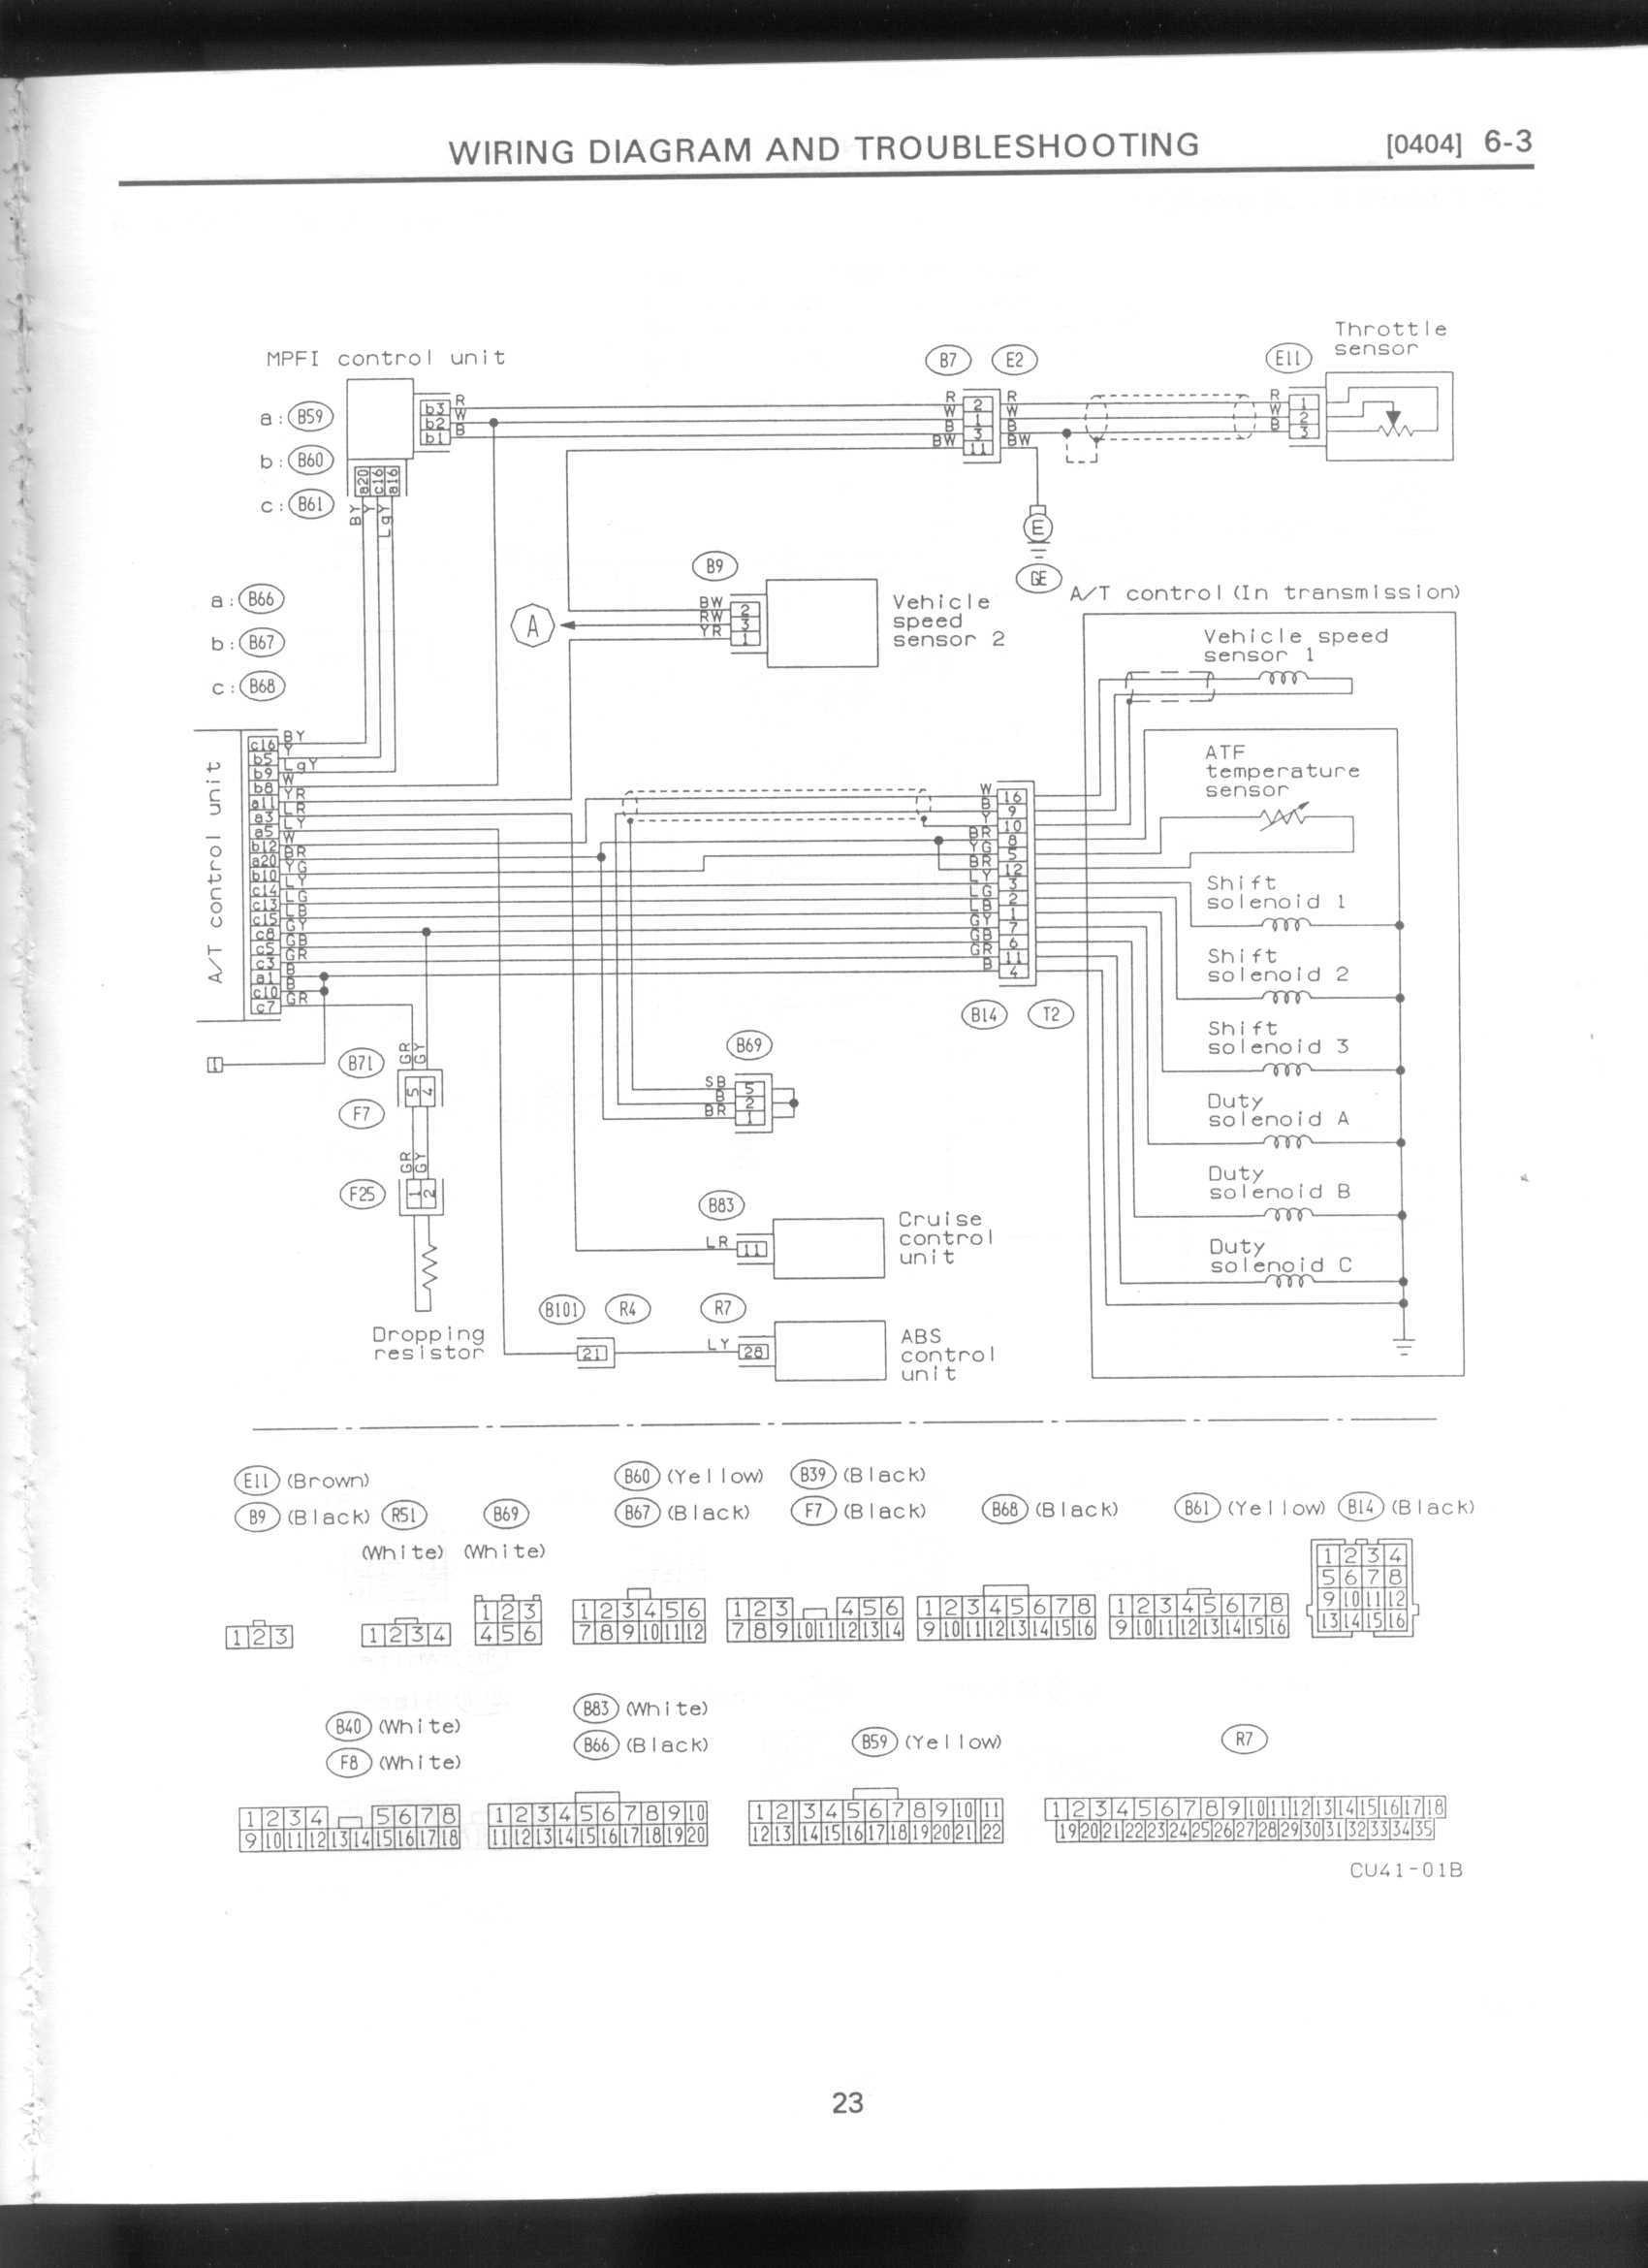 JDM diagram: http://www.subaru-svx.net/photos/files/b3lha/33820.jpg